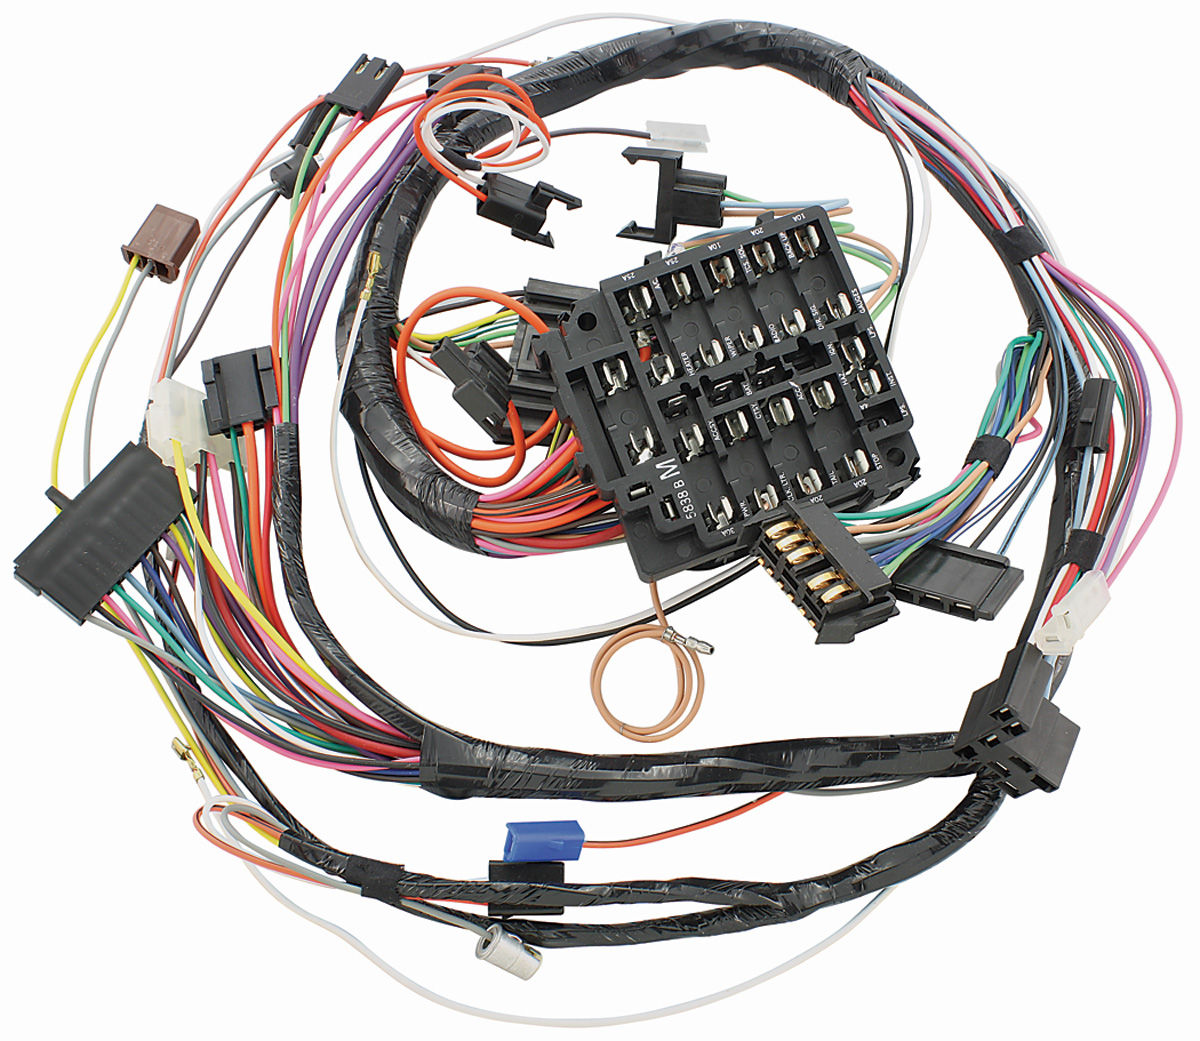 1979 El Camino Wiring Harness Mh